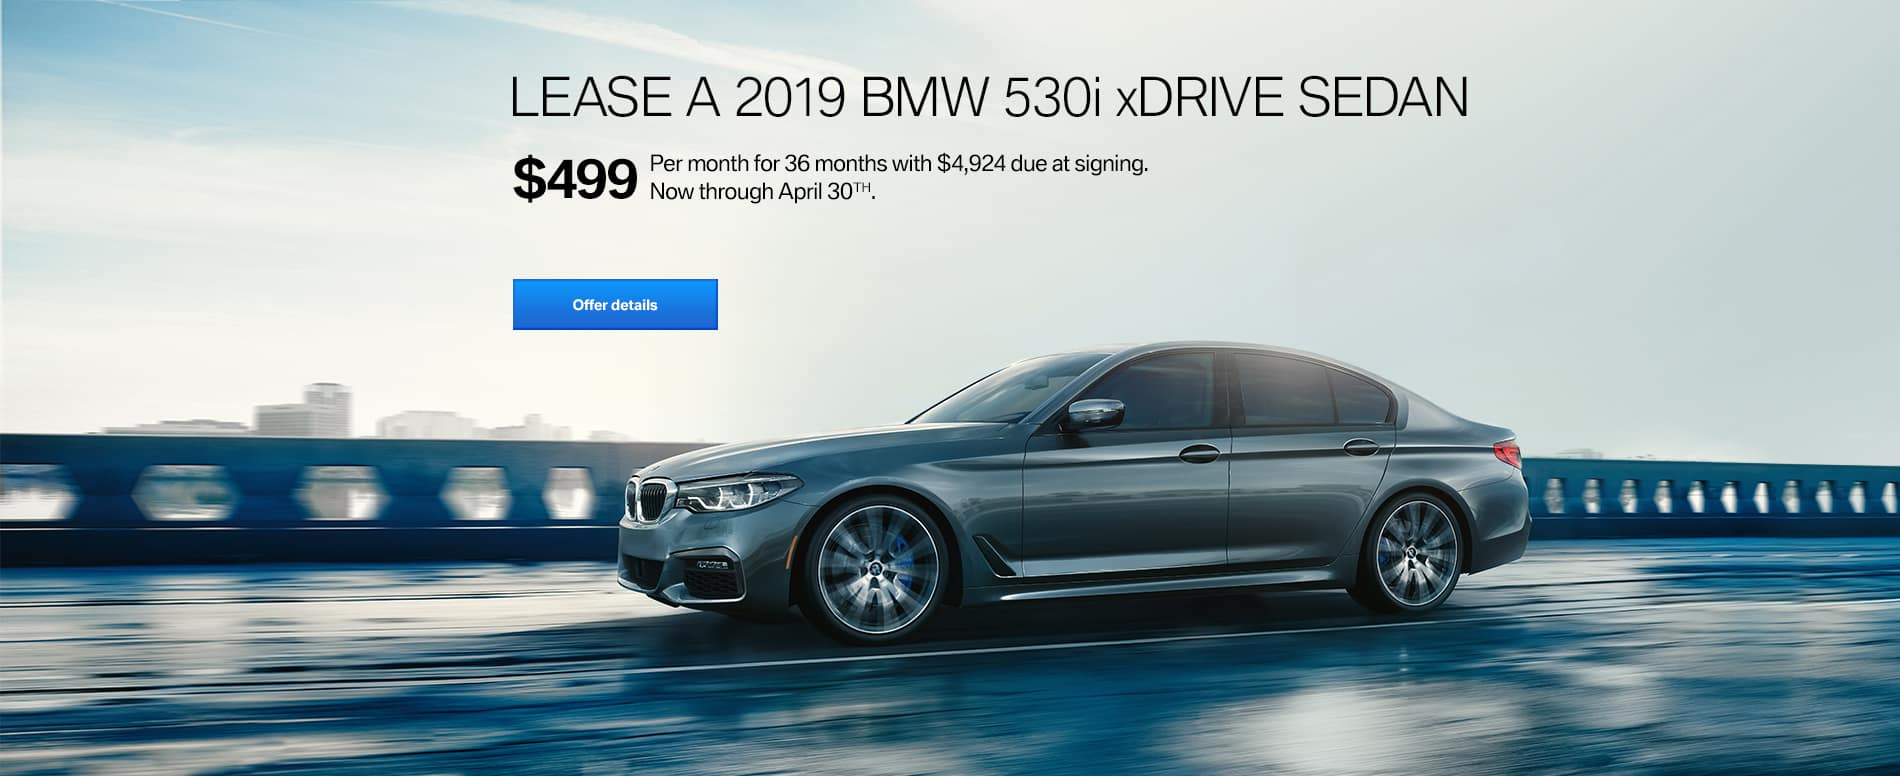 2019-bmw-530i-april-offer